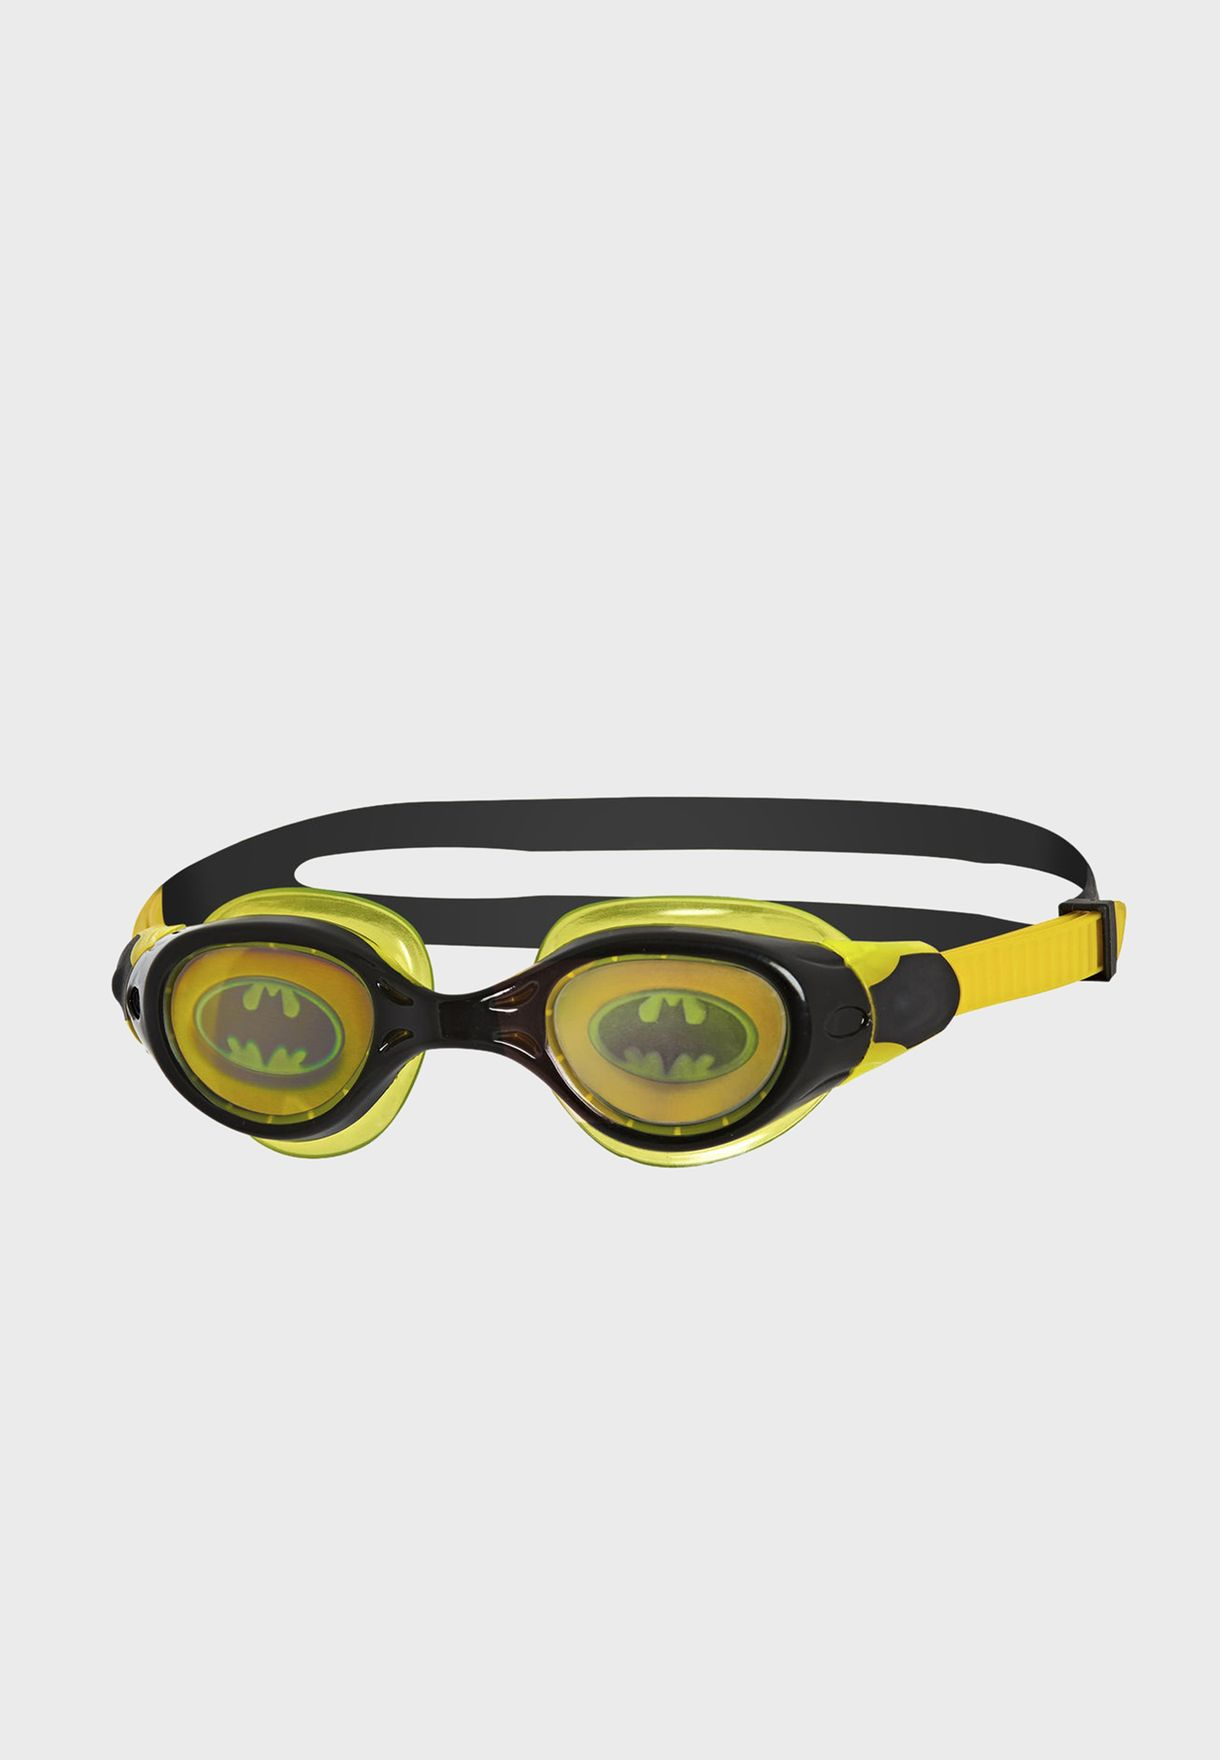 Youth Batman Hologram Swimming Goggles